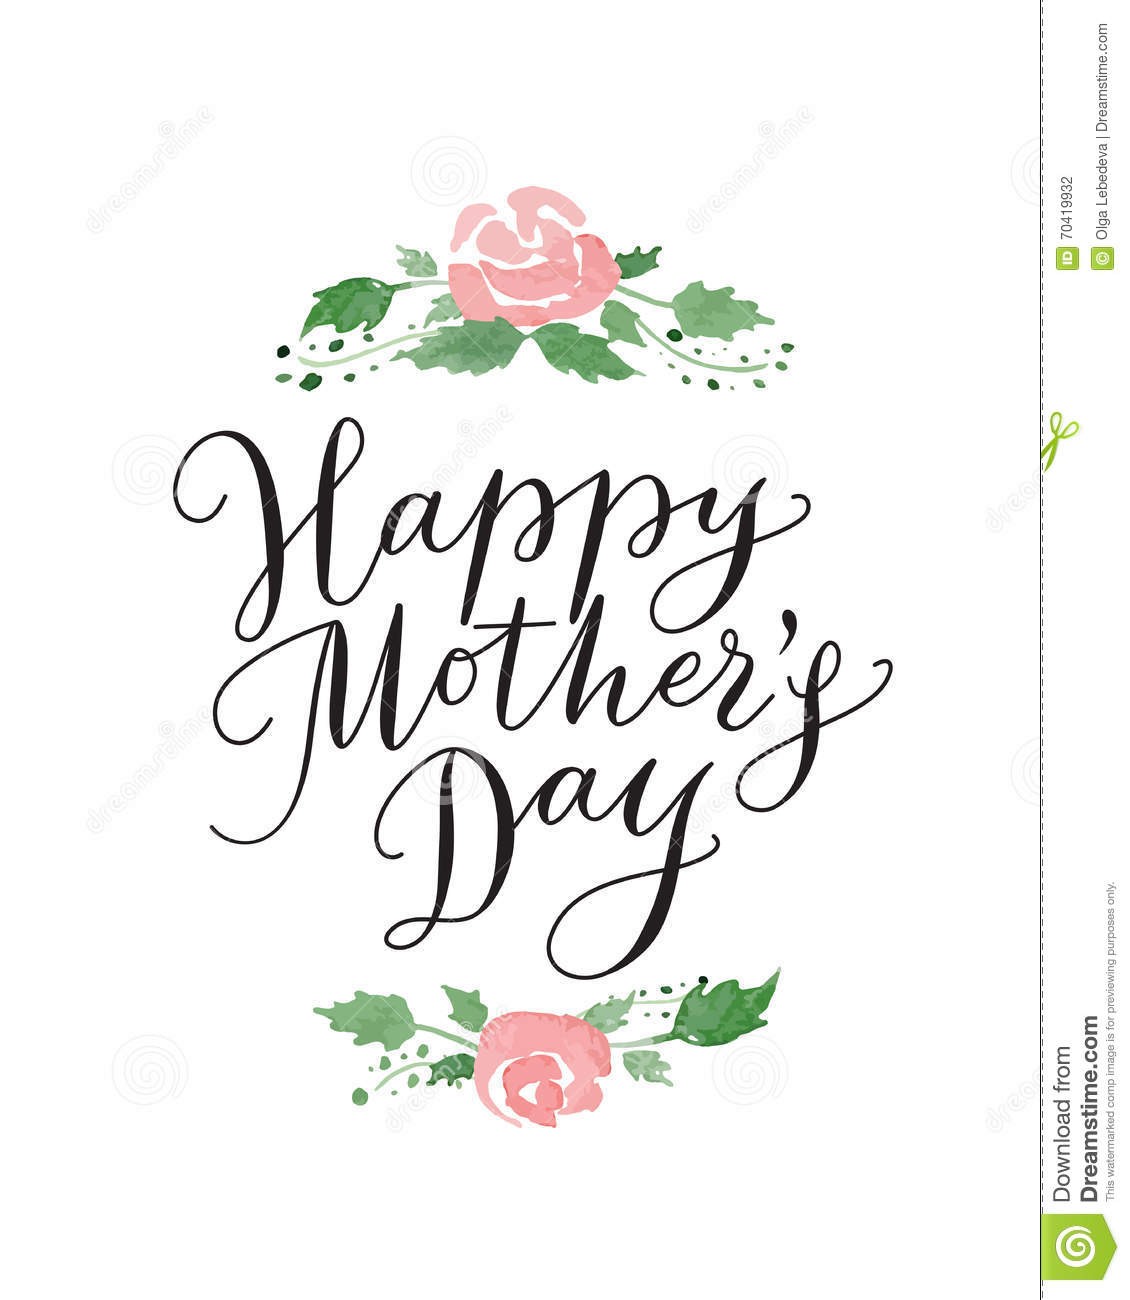 happy mothers day card with hand drawn text and flowers. Black Bedroom Furniture Sets. Home Design Ideas